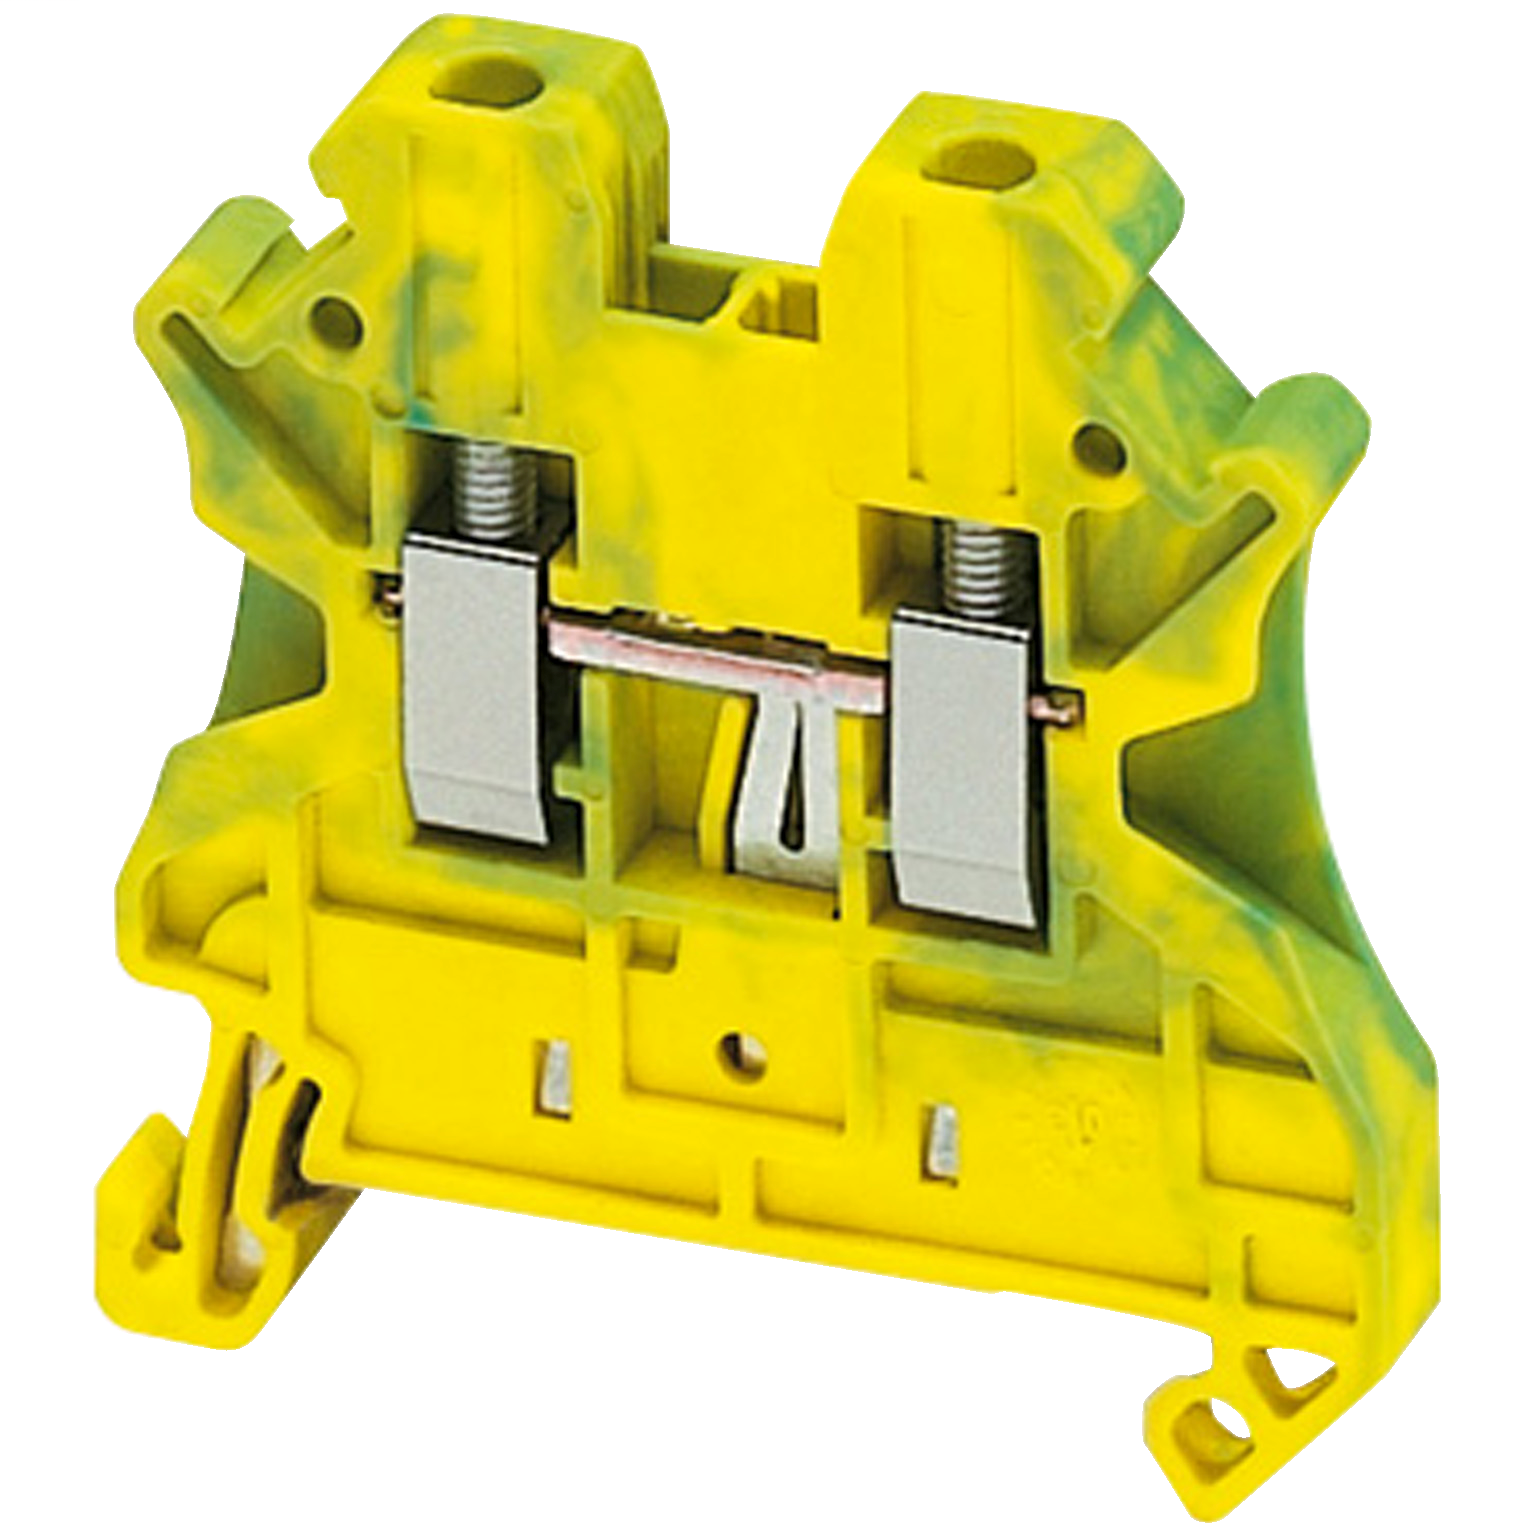 SQUARE D SCREW TERMINAL, PROTECTIVE EARTH, 2 POINTS, 2,5MM², GREEN-YELLOW